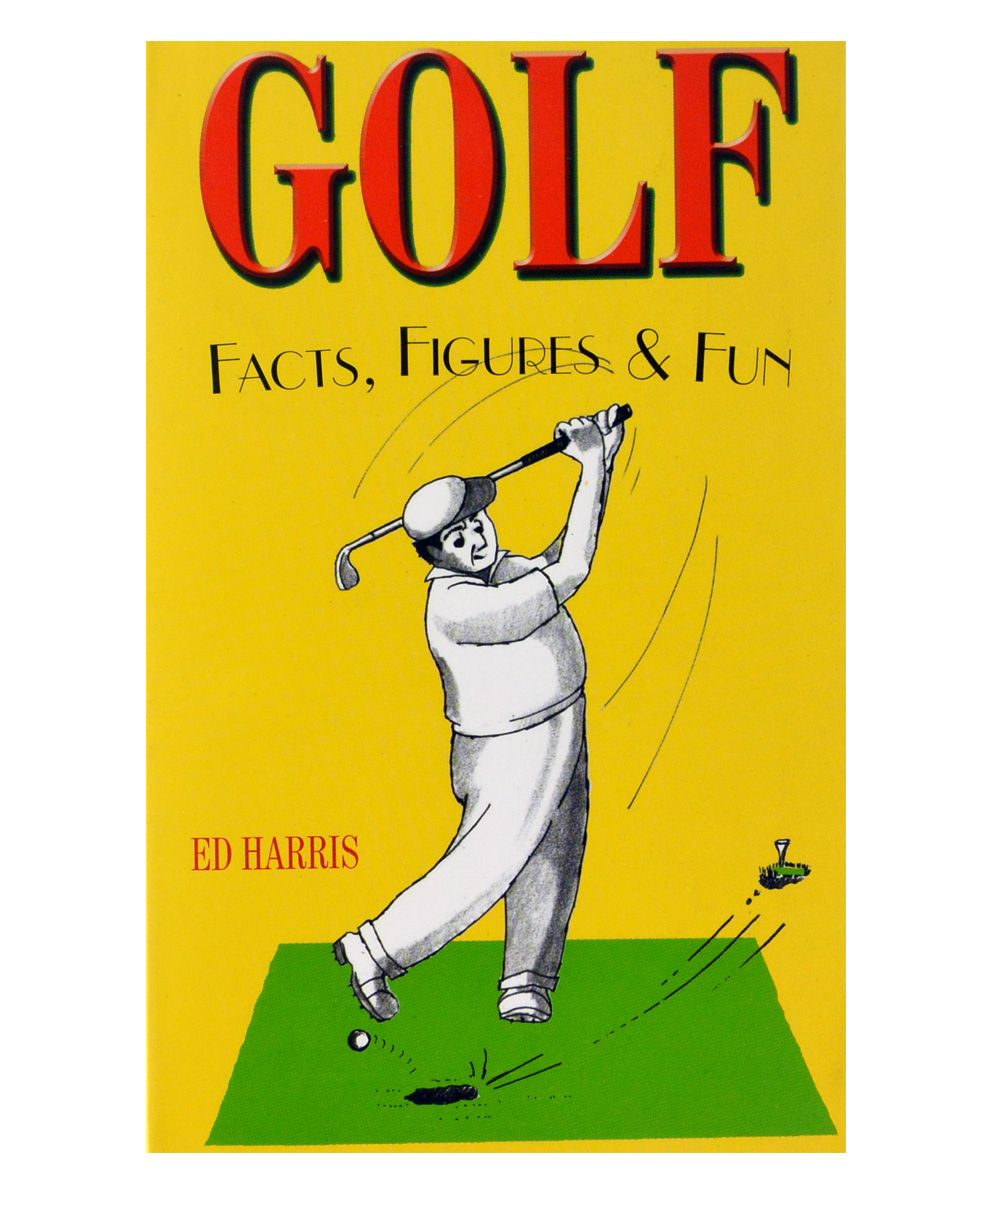 an introduction to the history of the game of golf Learn all you wanted to know about the history of golf get the accurate information on the origin of golf and its development with the passes of time.